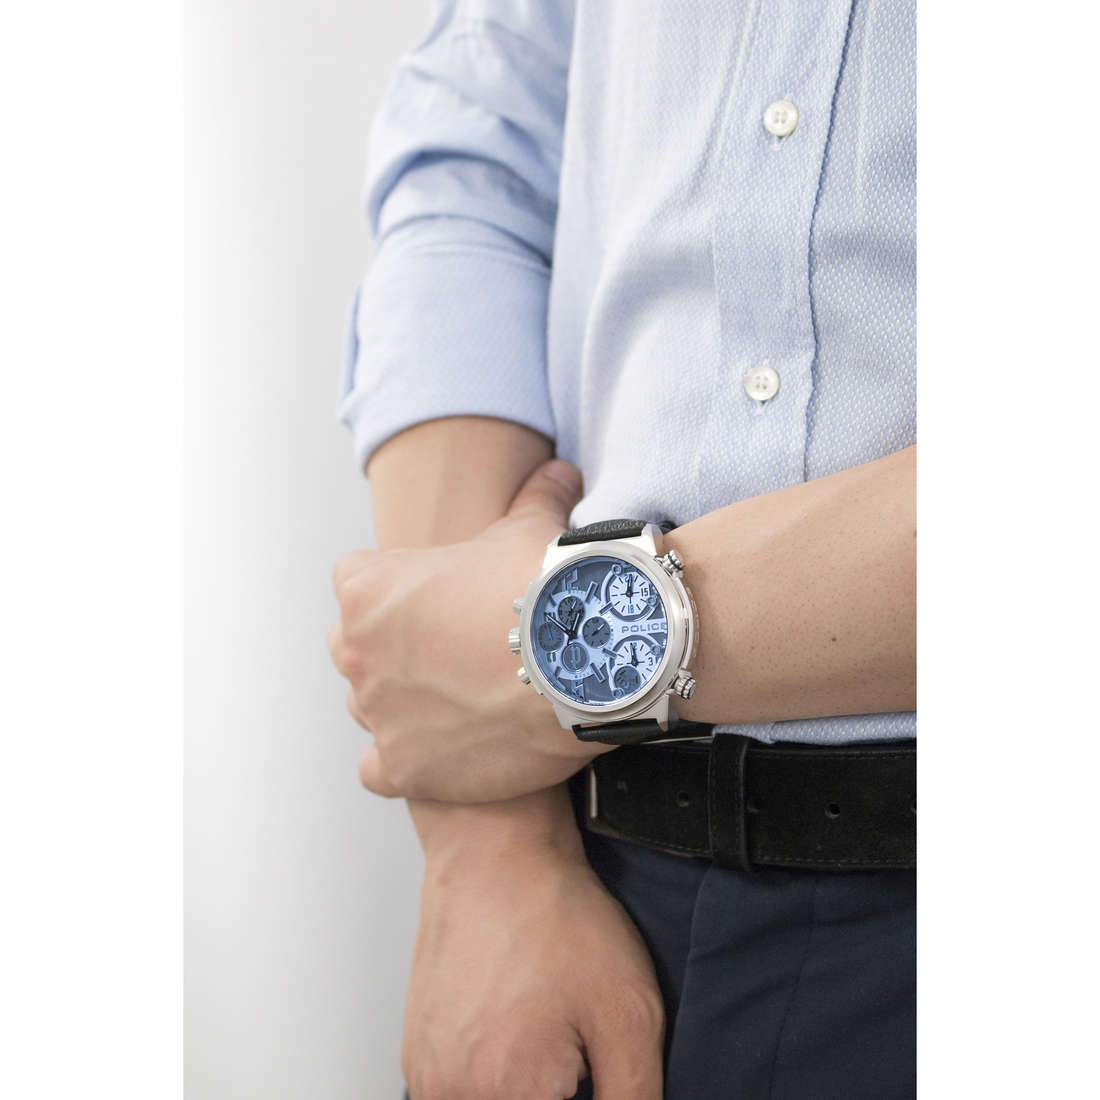 Police chronographes Viper homme R1471684001 indosso